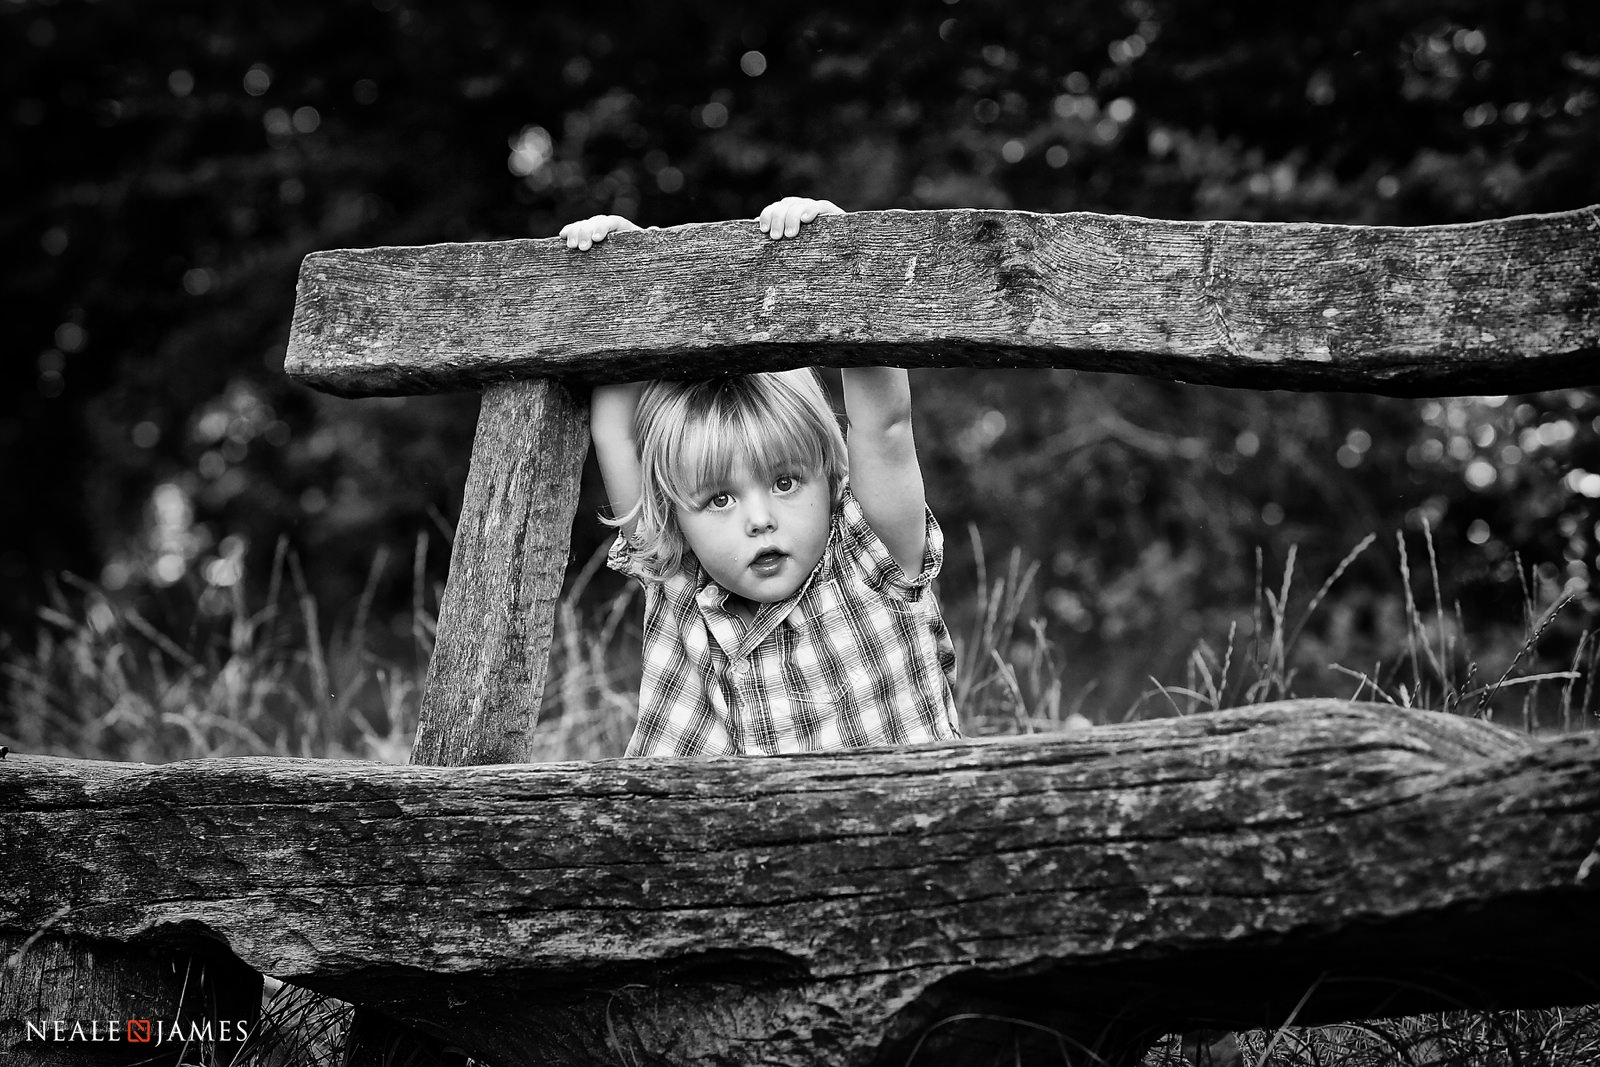 Monochrome photo of a boy on a park bench